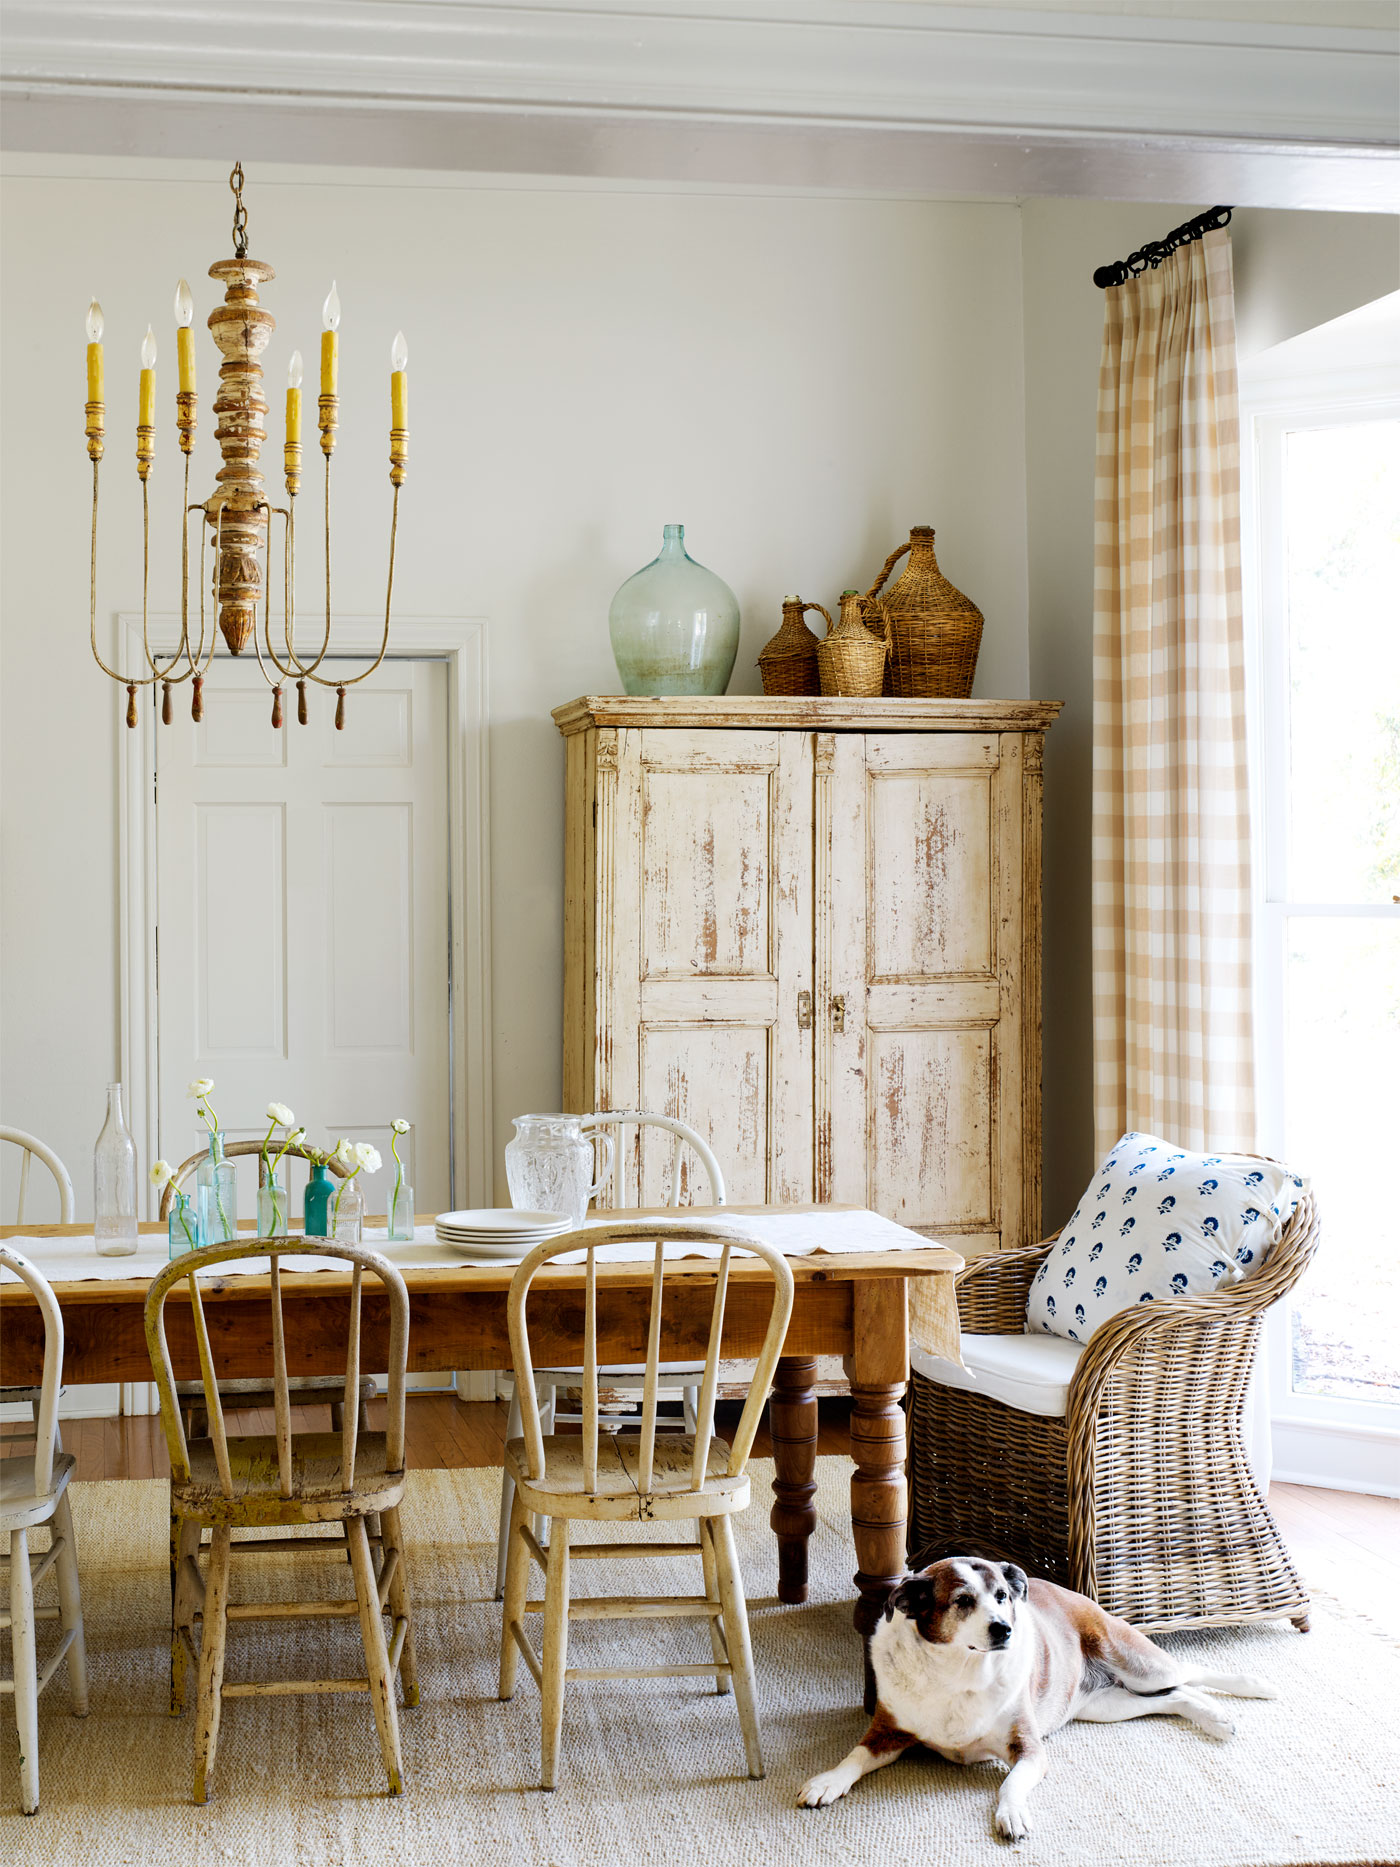 Christi wilson budget decorating budget decorating ideas for Country living dining room ideas